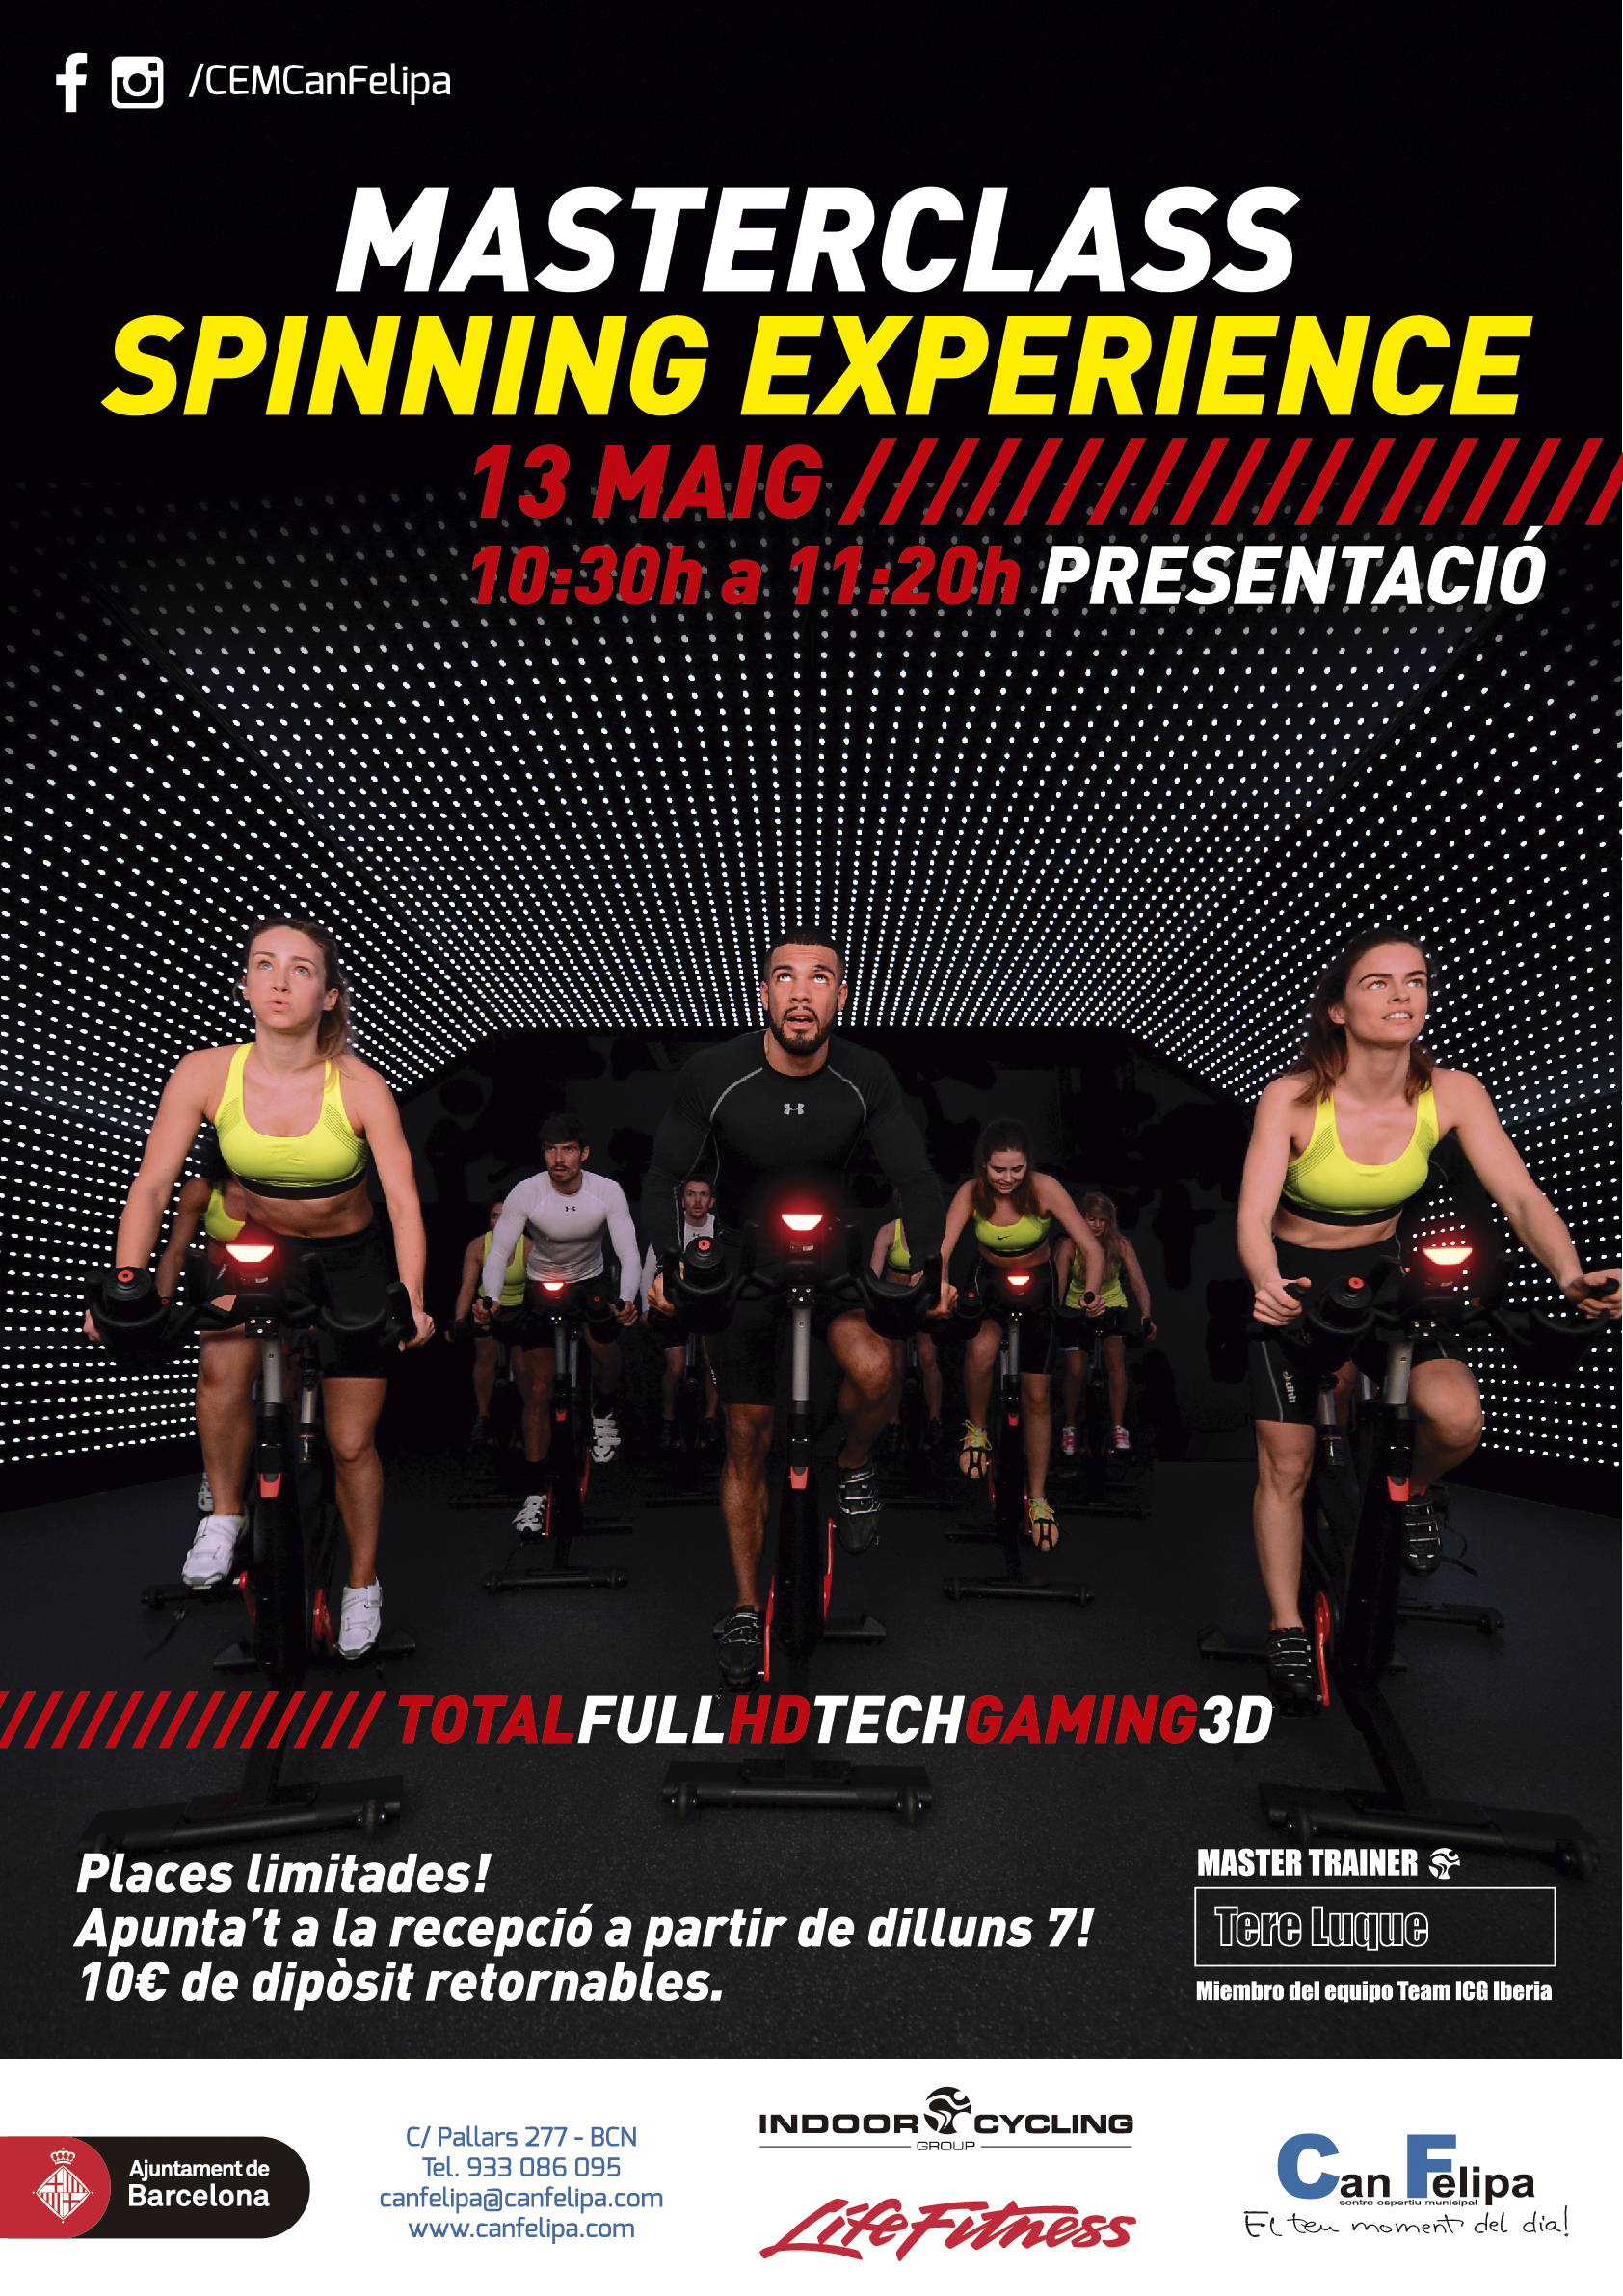 Spinning Experience